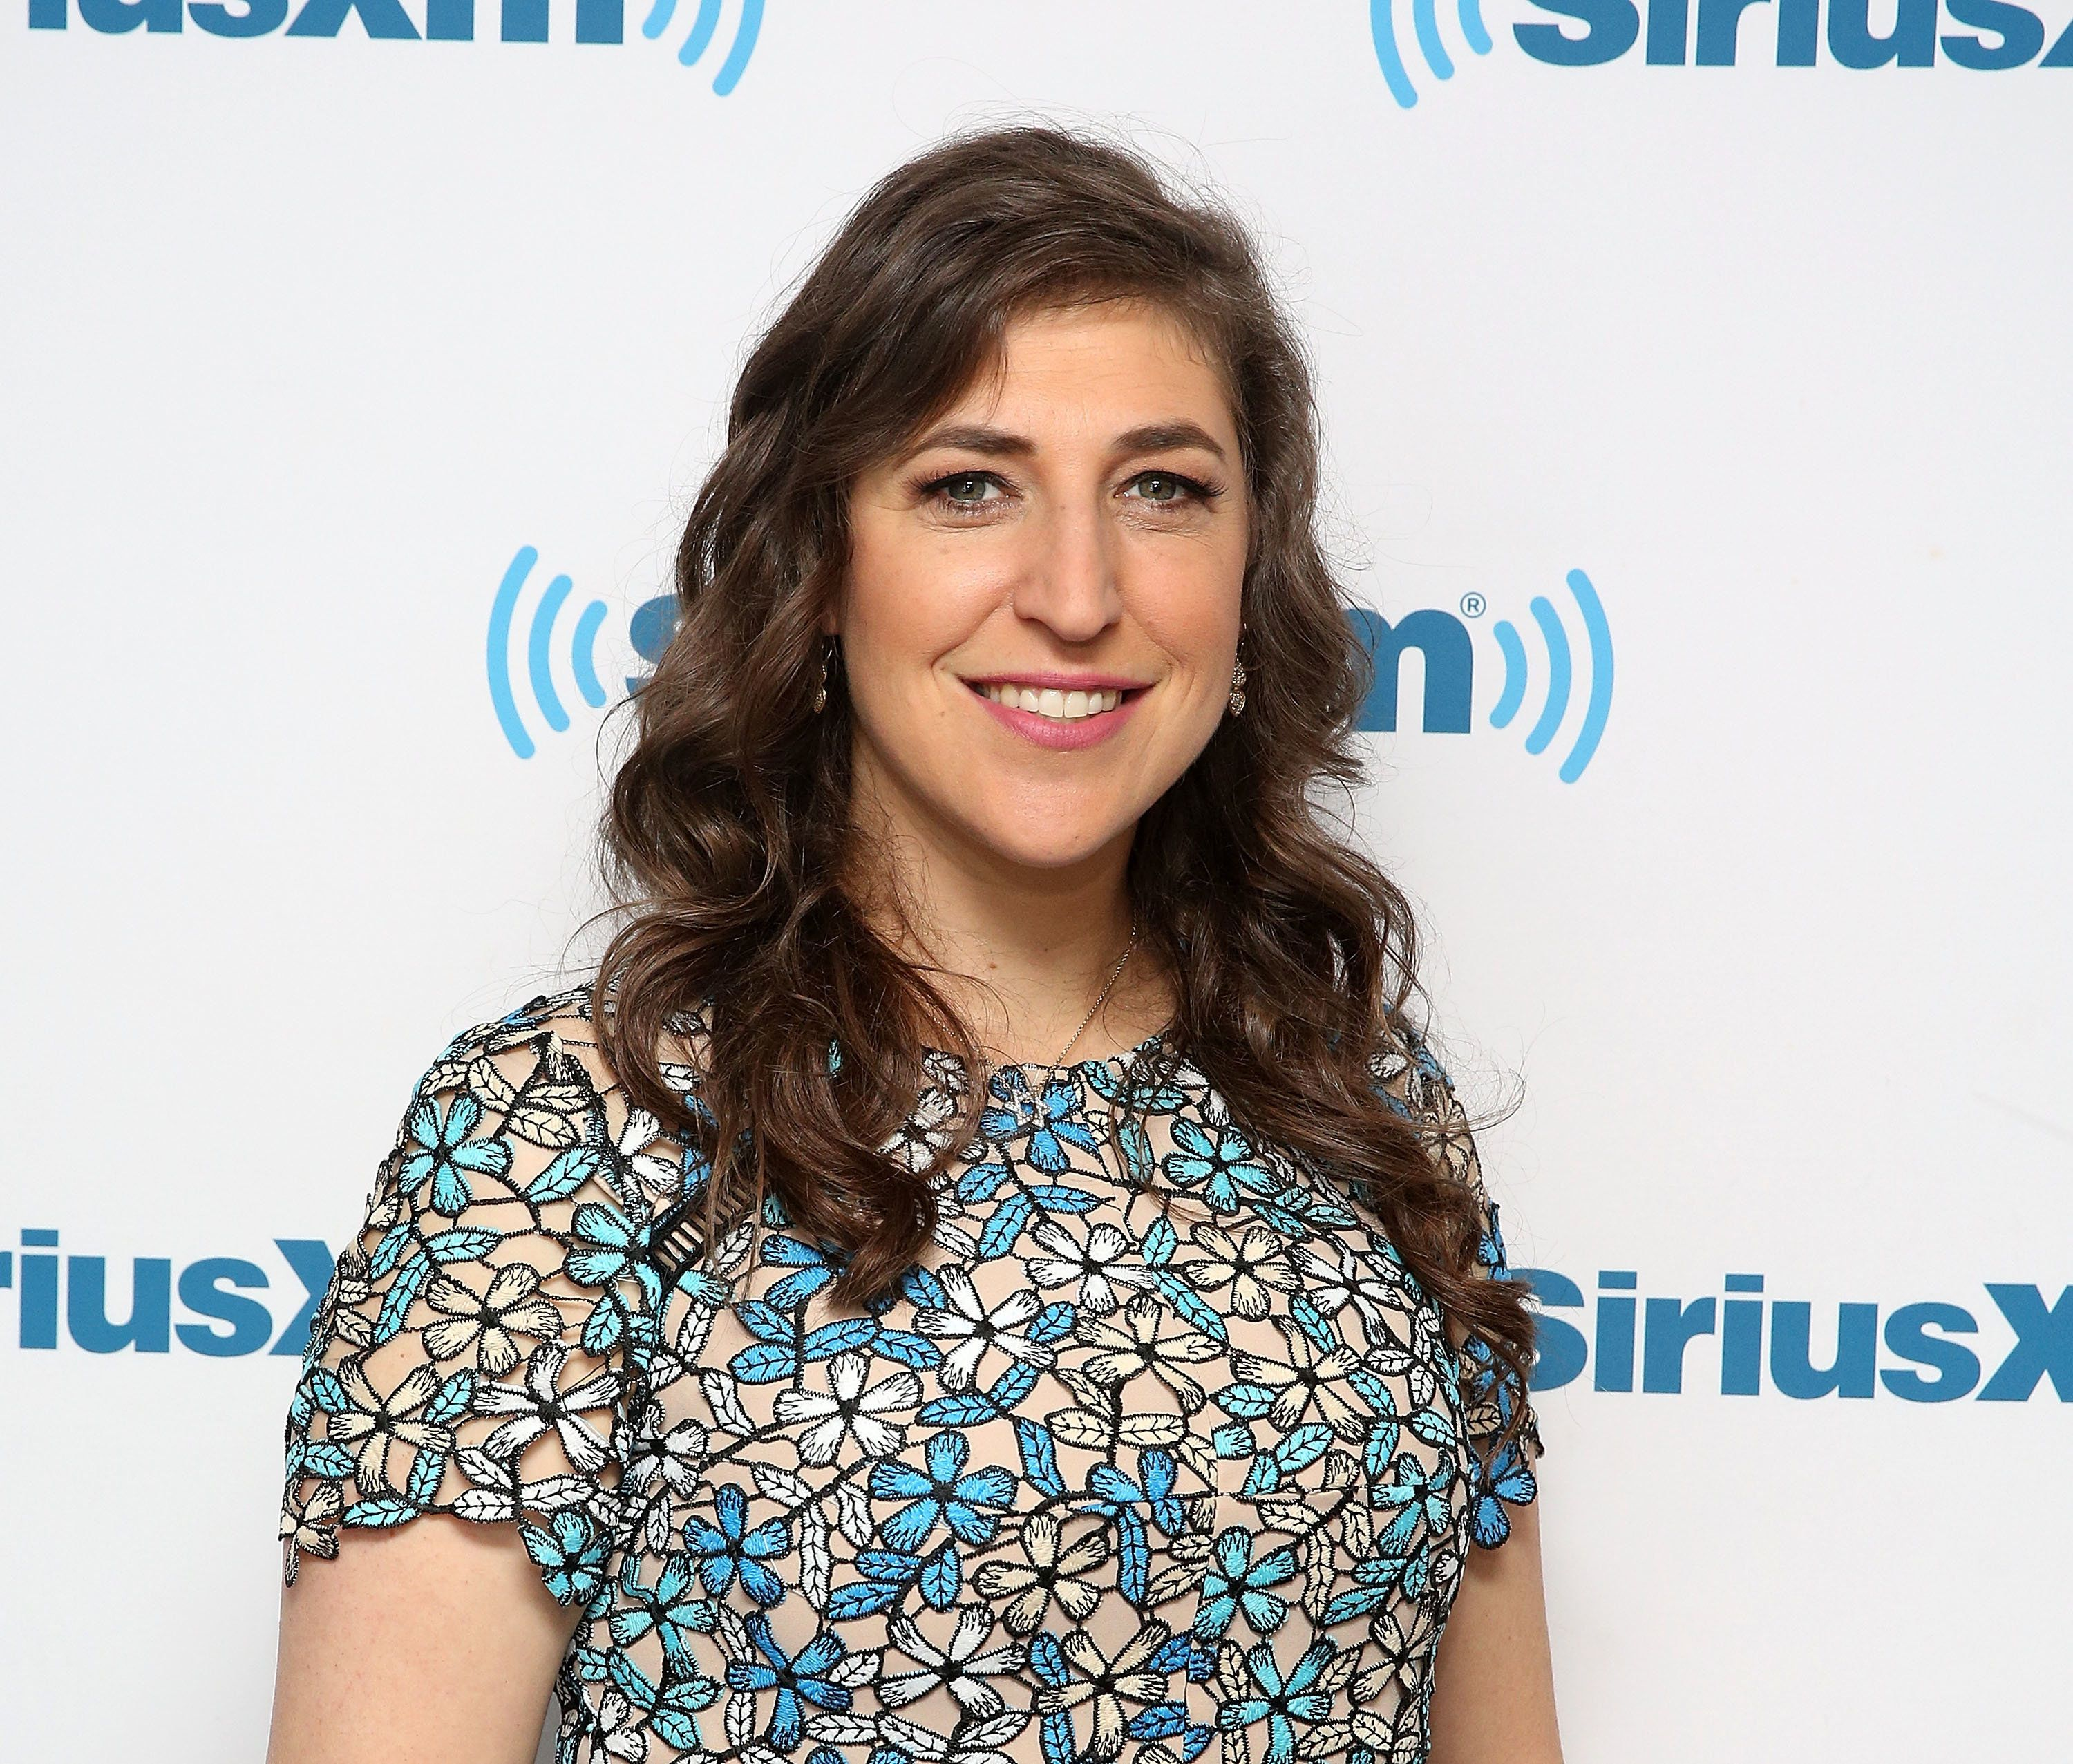 Big Bang Theory's Mayim Bialik Apologies For 'Victim-Blaming' Harvey Weinstein Comments